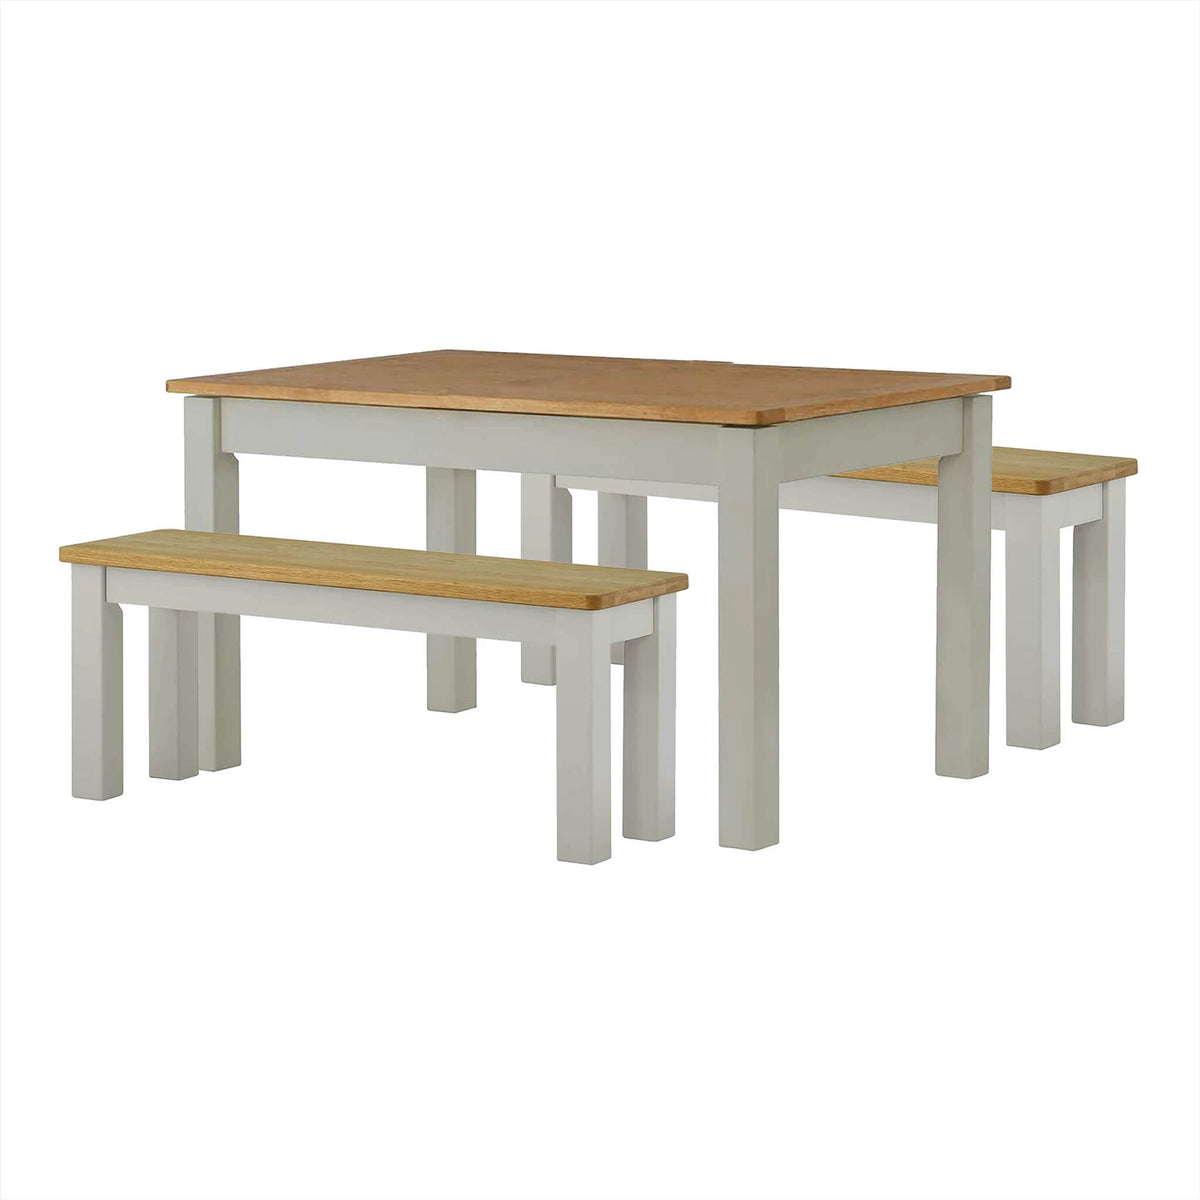 The Padstow Grey Wooden Dining Table Set with 2 Wooden Benches from Roseland Furniture